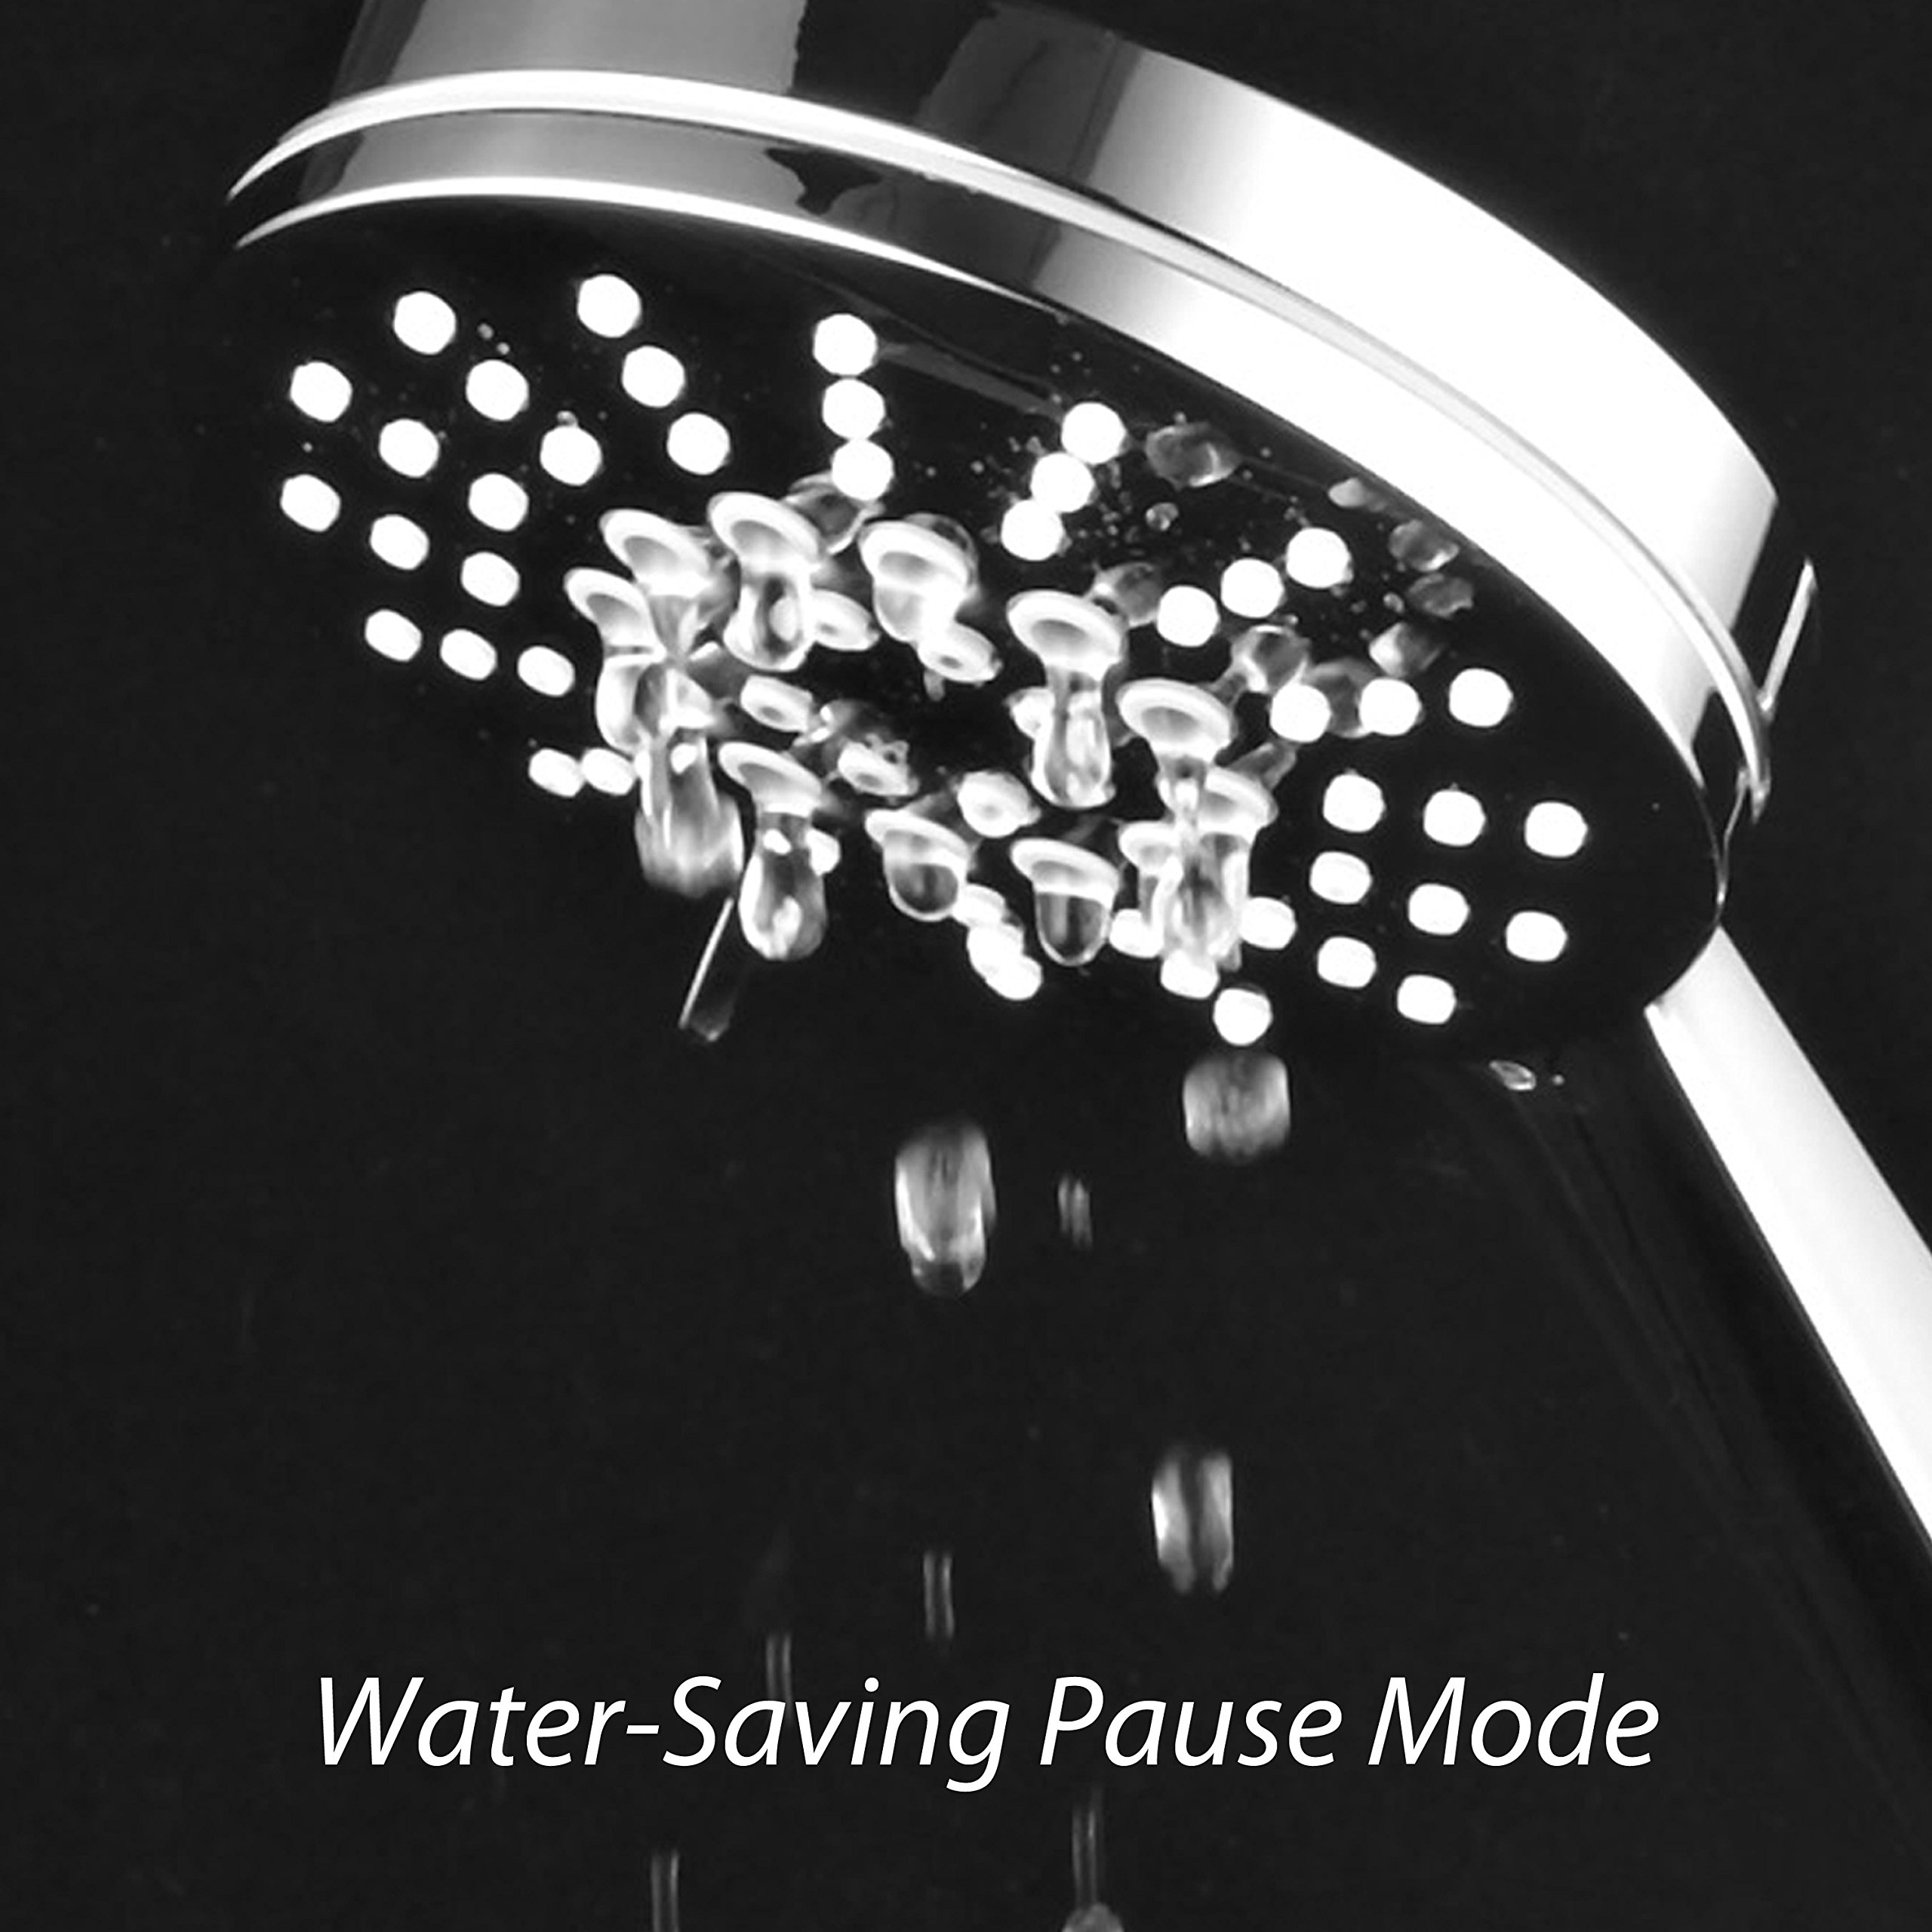 AirJet-300 High Pressure Luxury 6-setting Hand Shower with High-Velocity Flow Accelerator(TM) Hydro-Engine for More Power with Less Water! Extra-Long 6 foot Stainless Steel Hose/Full Chrome Finish